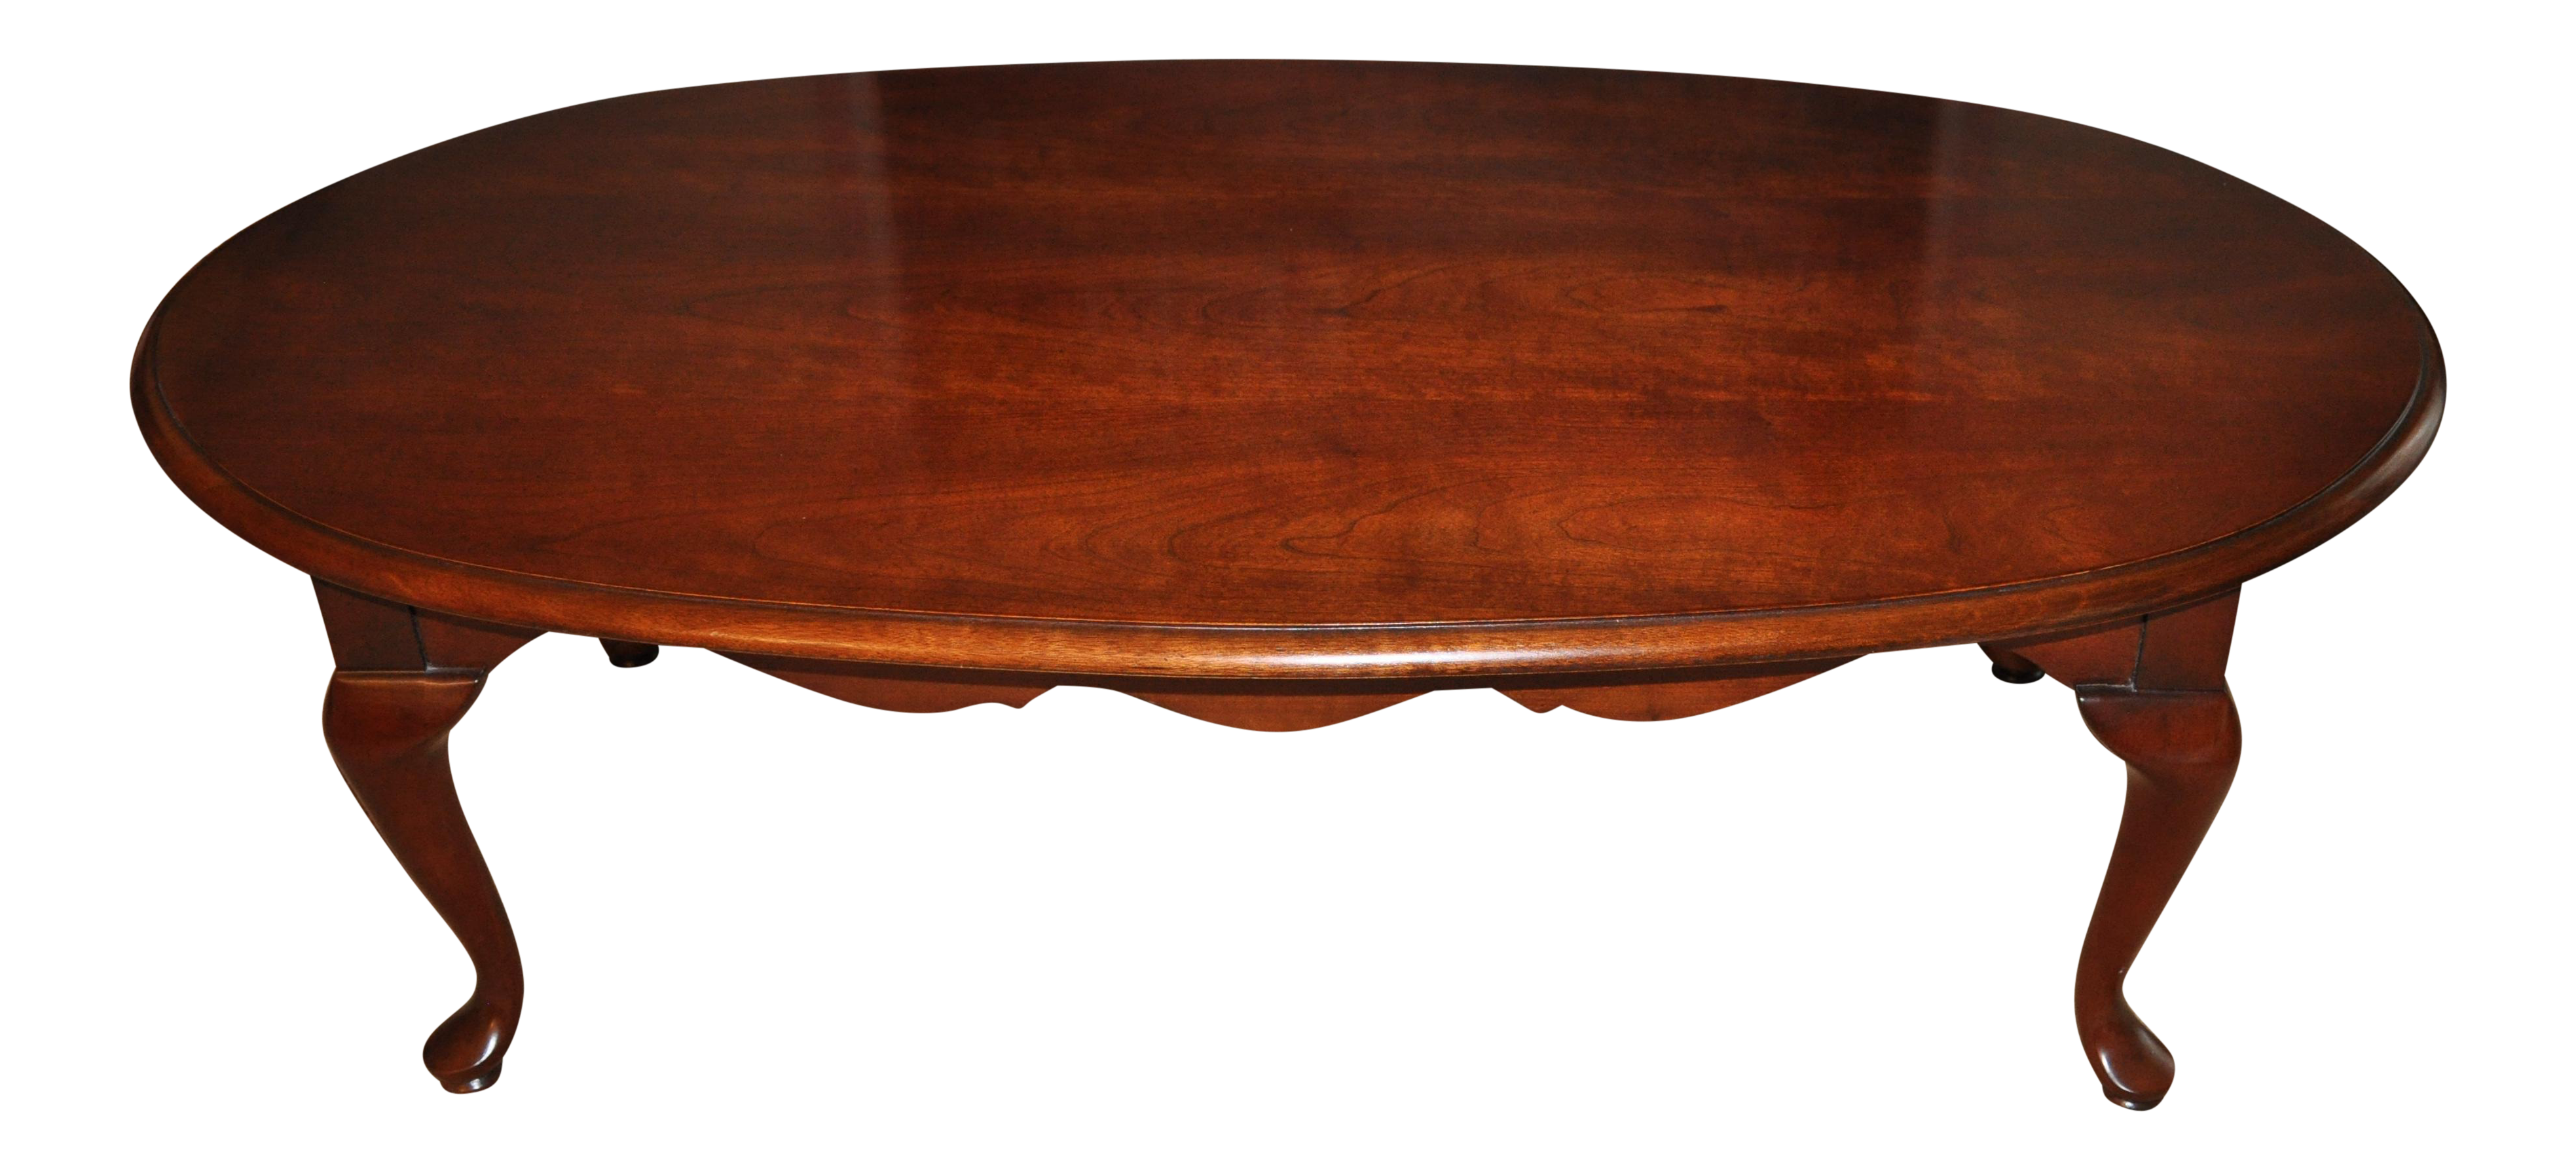 Merveilleux Thomasville Queen Anne Style Coffee Table